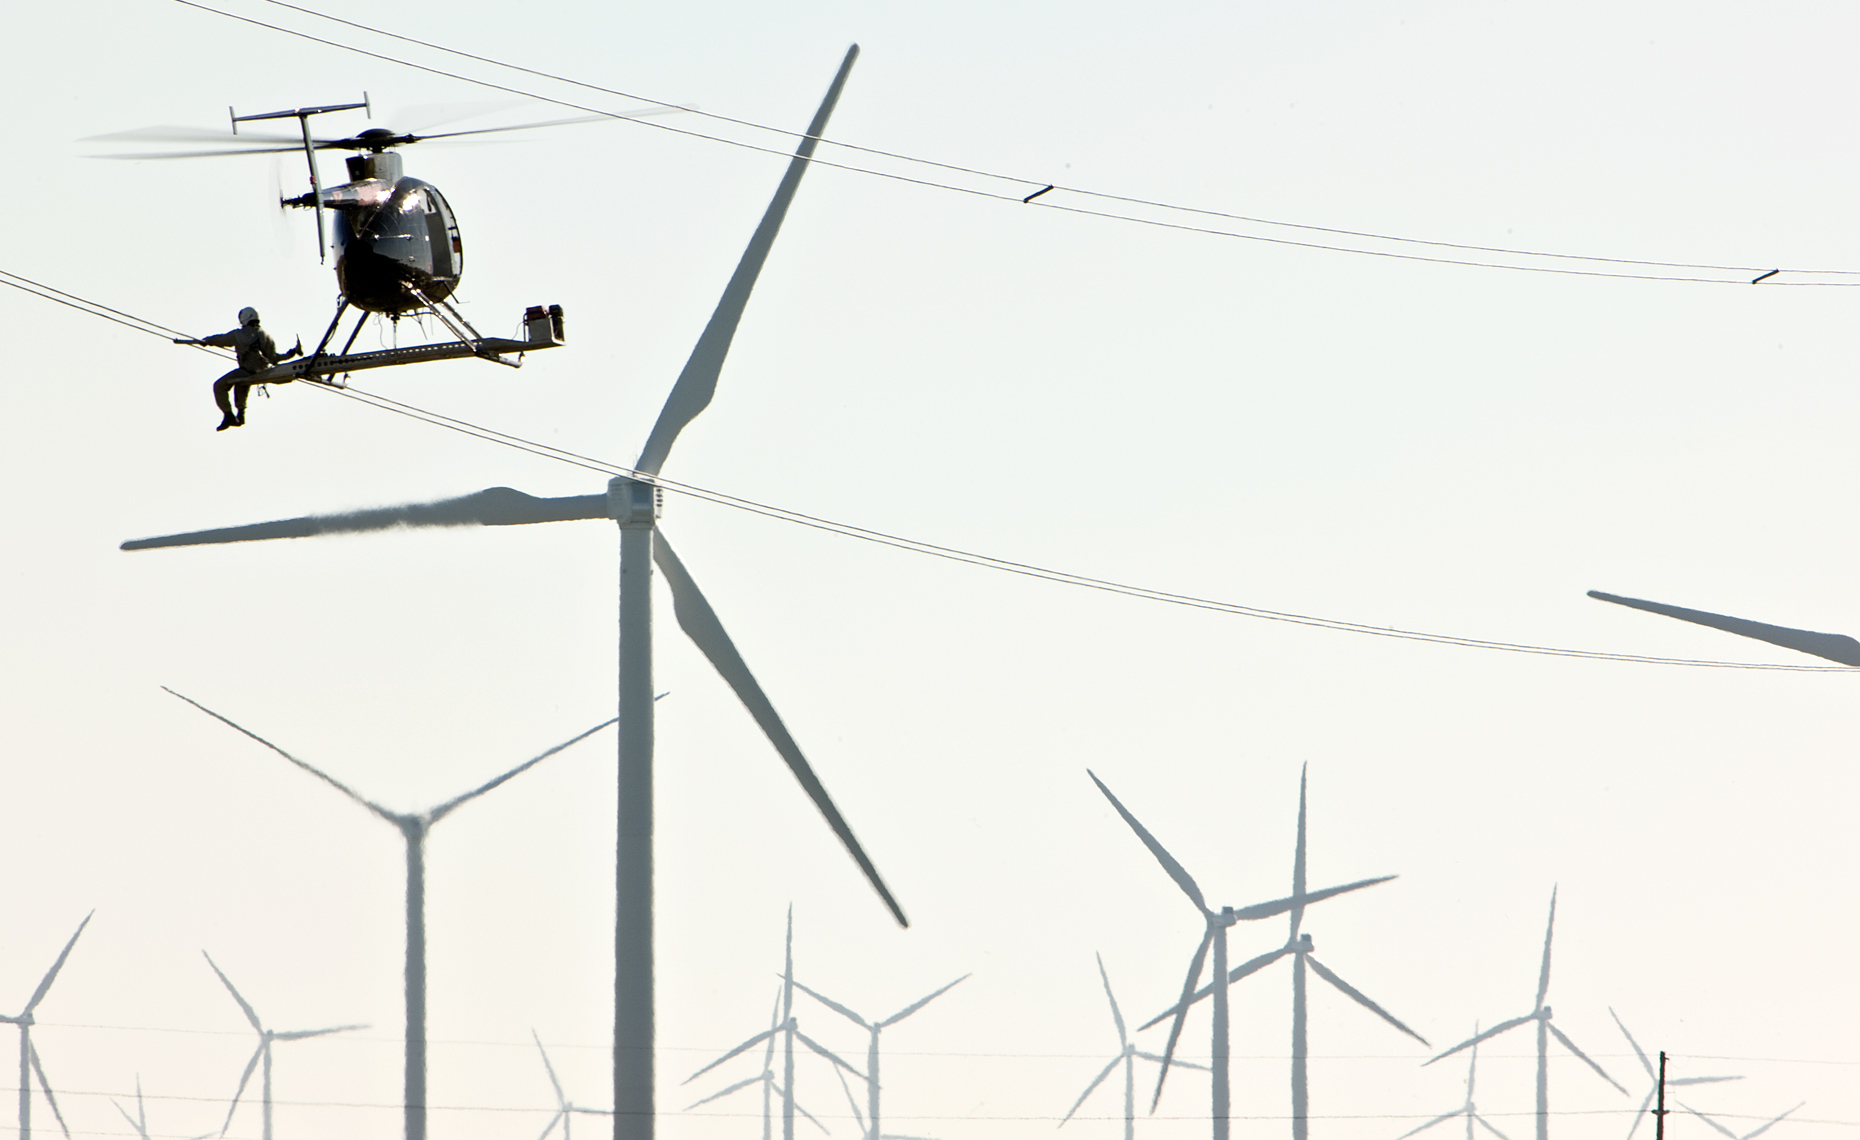 Powerlines_Windfarm_Helicopter